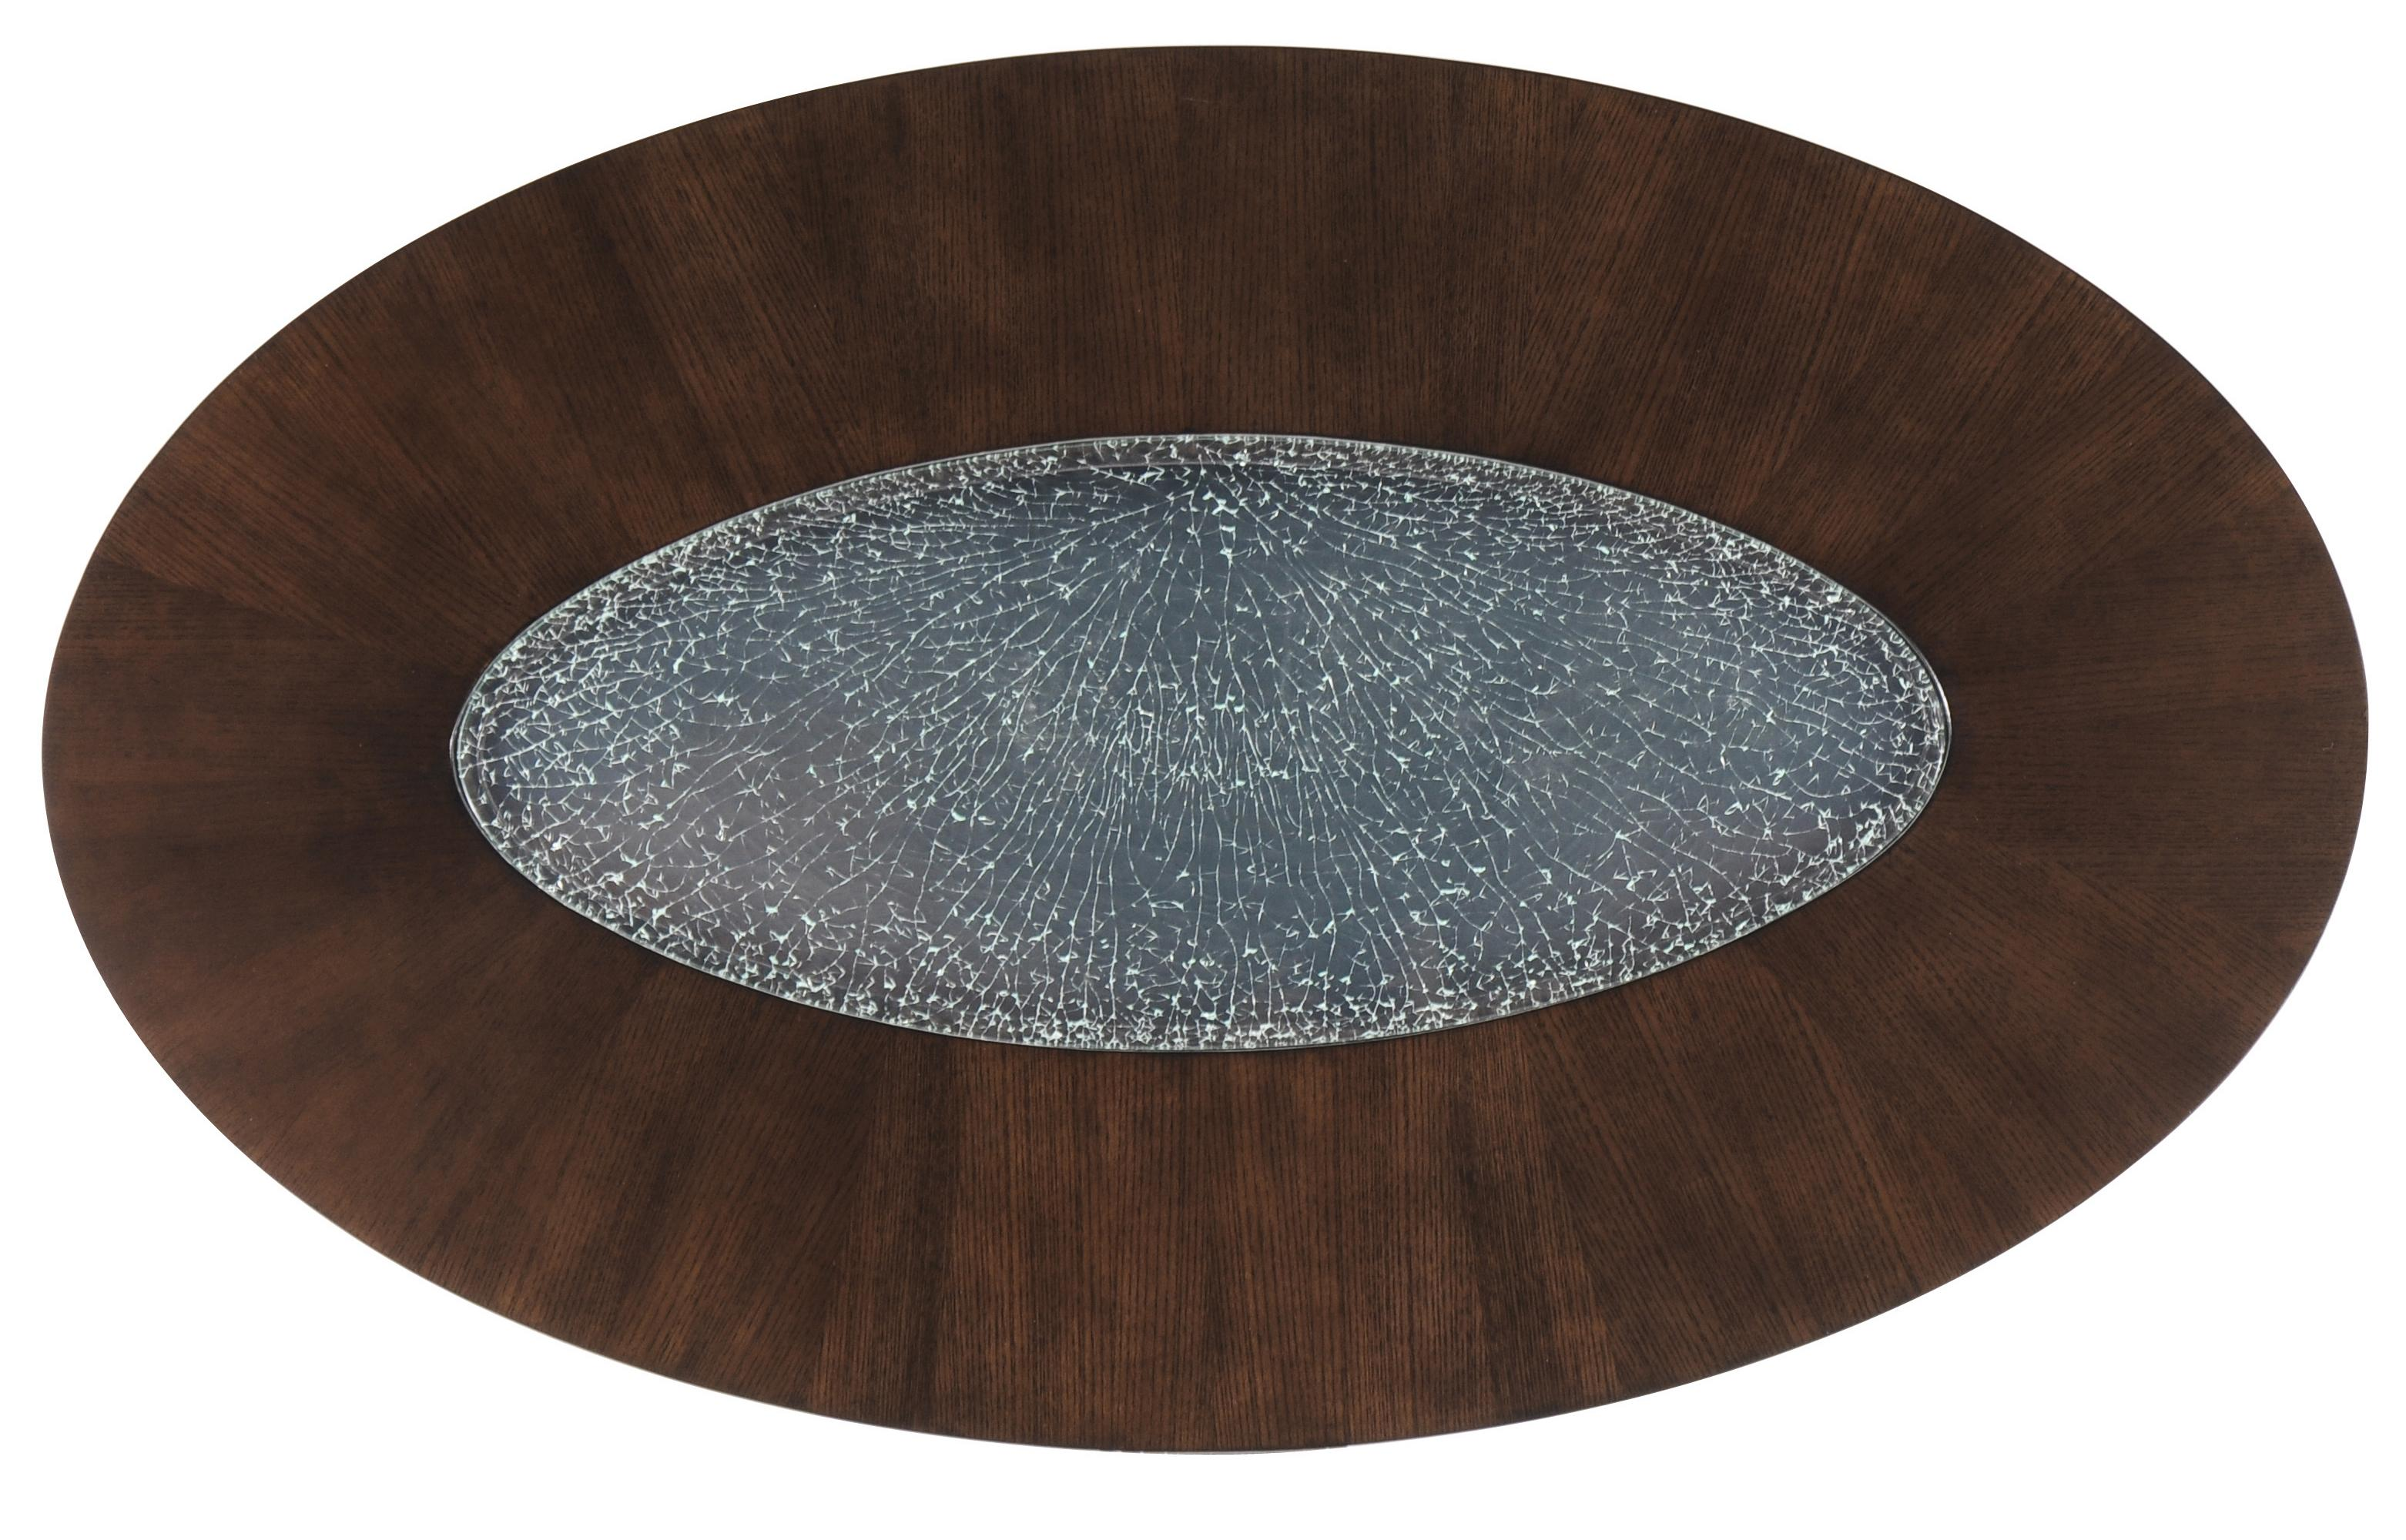 Oval Coffee Table w Glass Inset by Magnussen Home